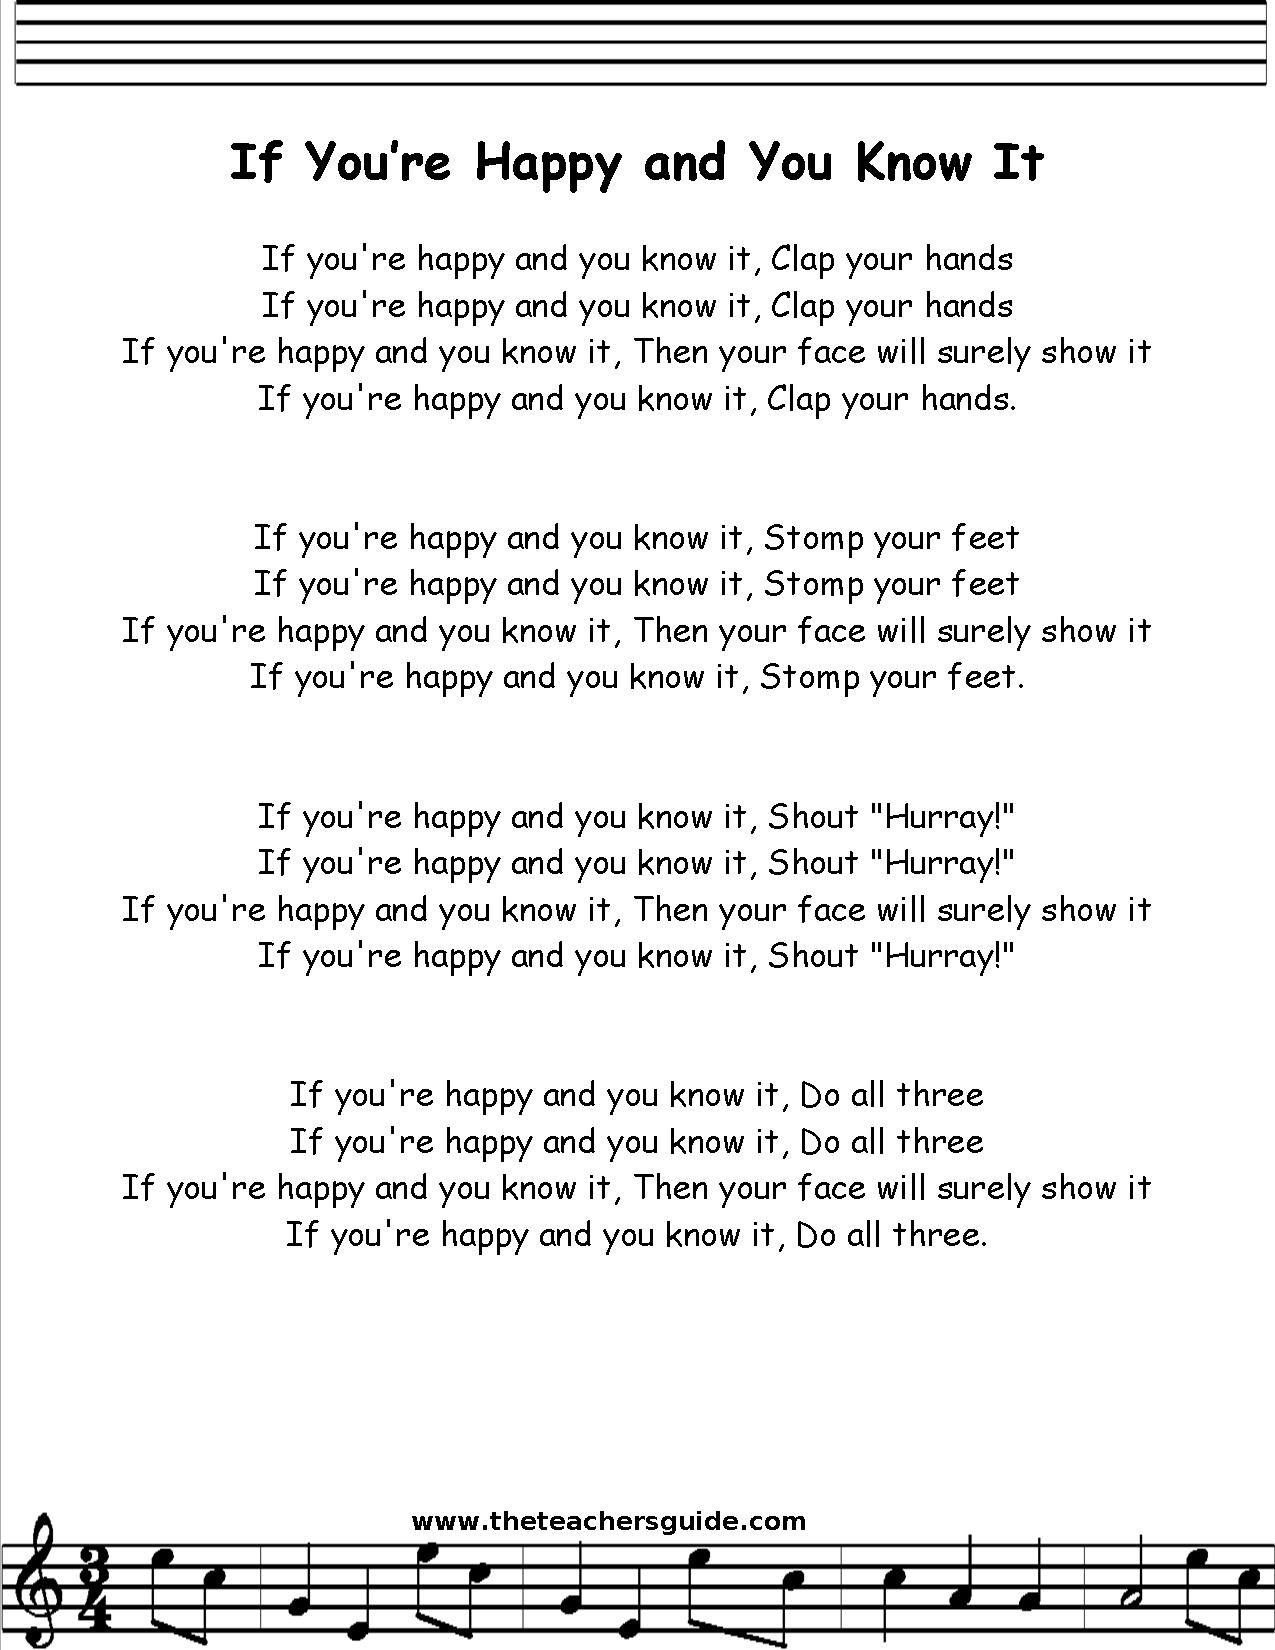 If You Re Happy And You Know It Lyrics Printout